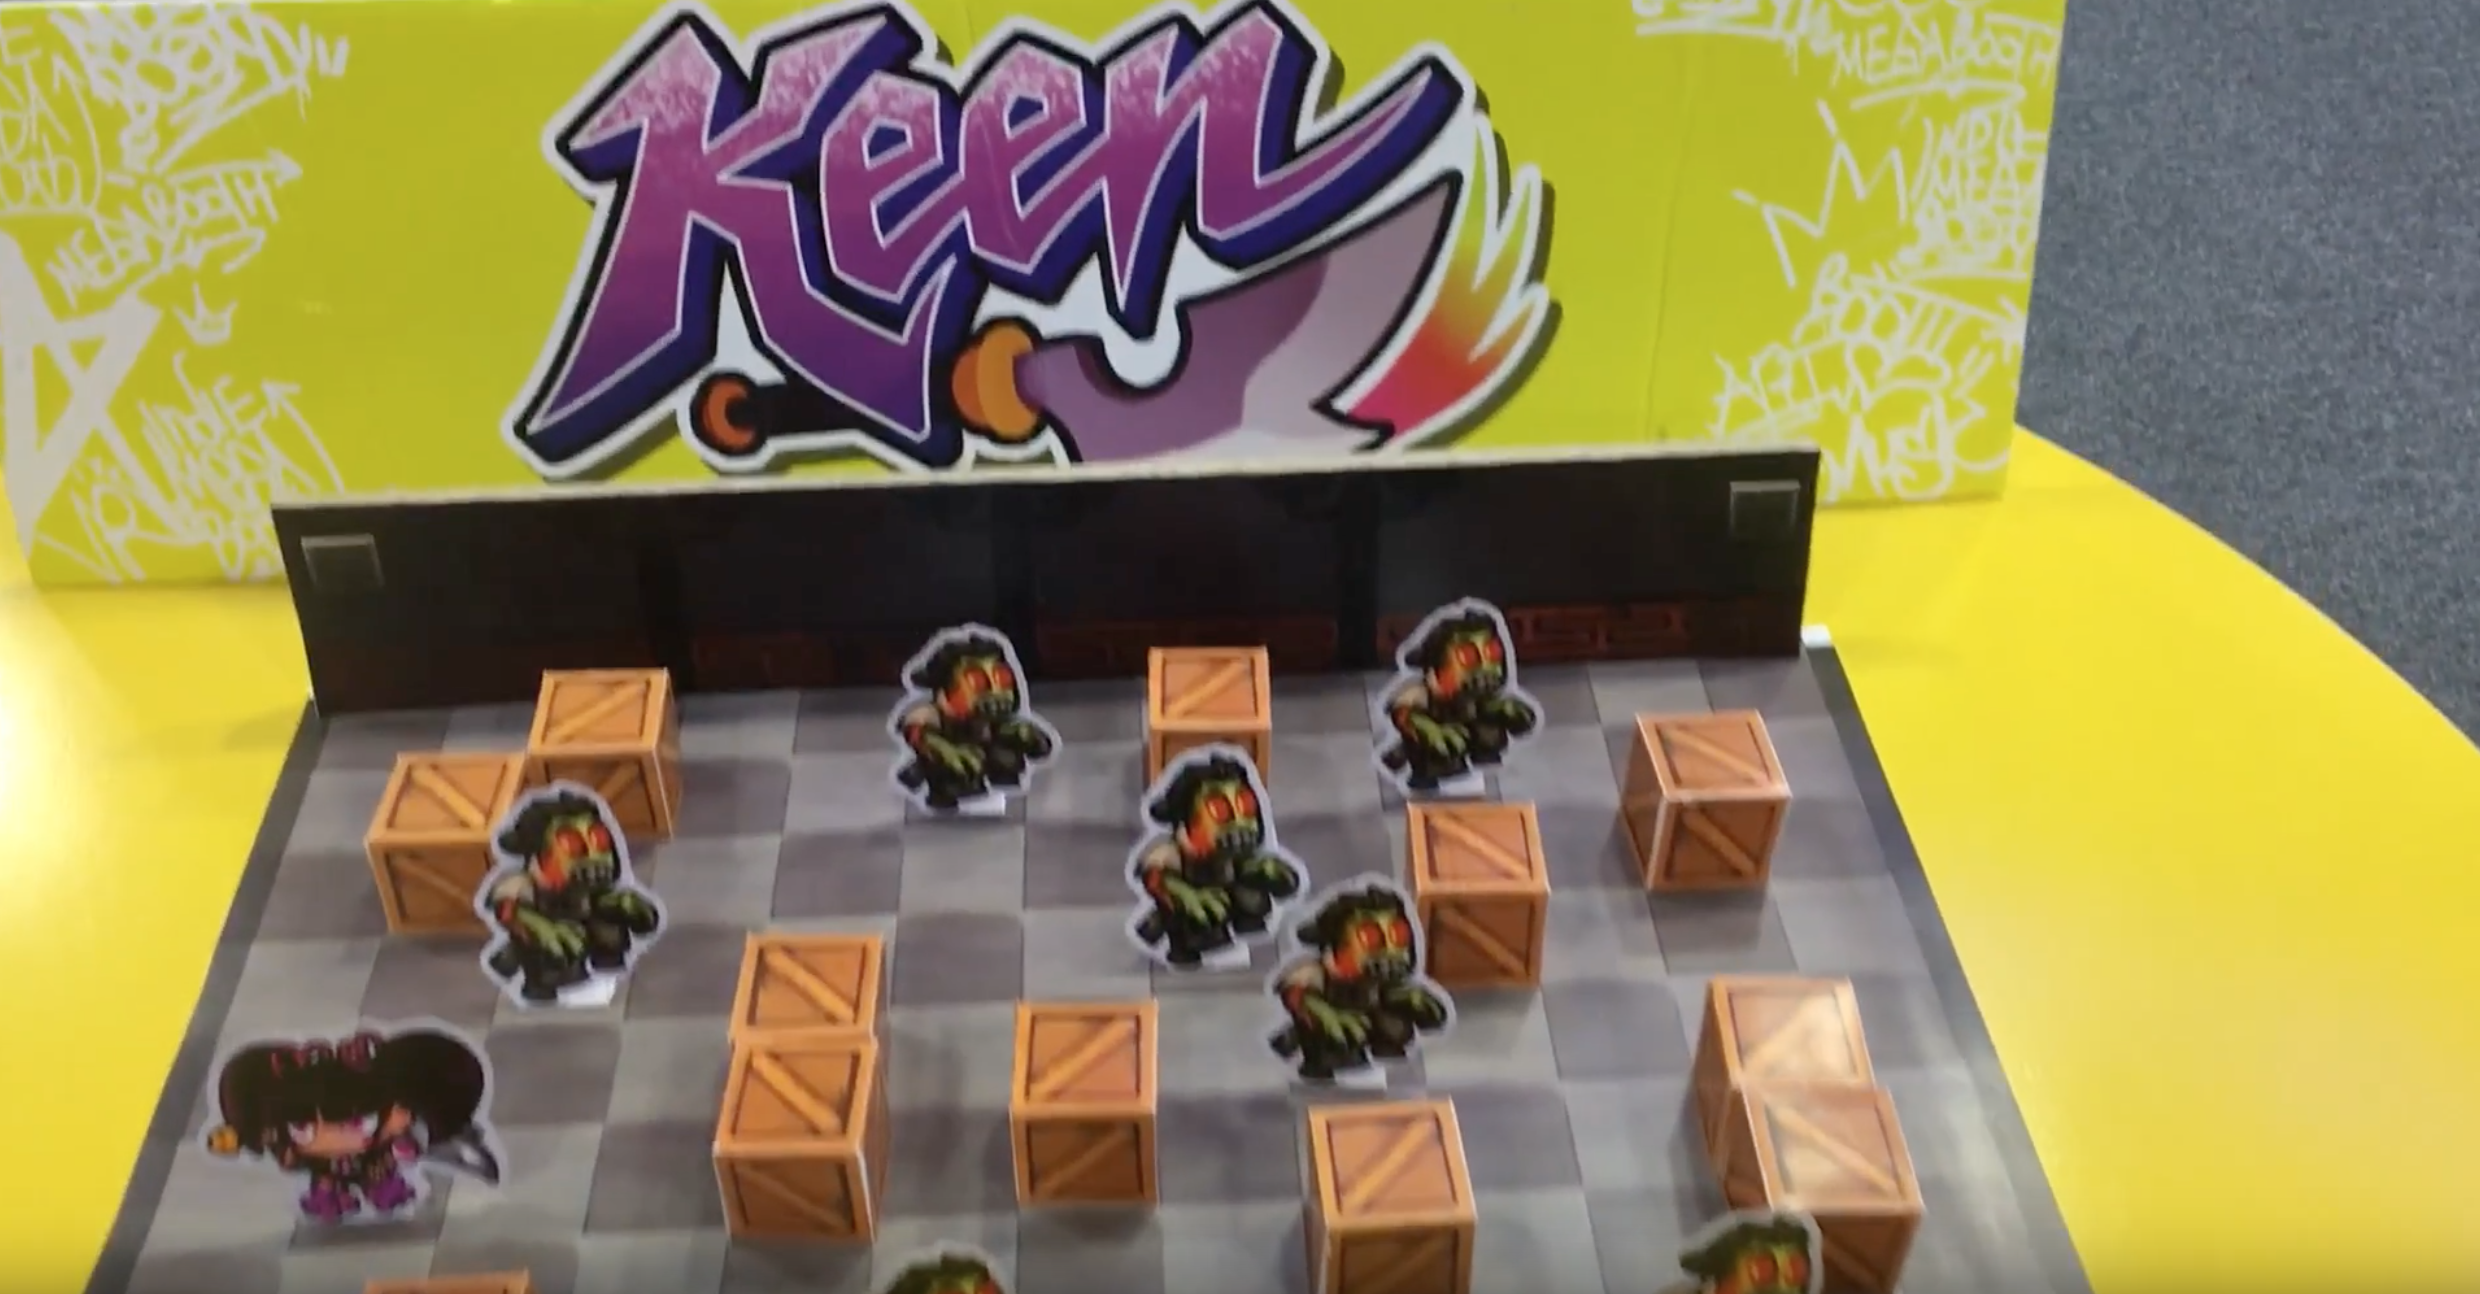 Keen the board game keen by cat nigiri make all the calculations yourself solutioingenieria Gallery